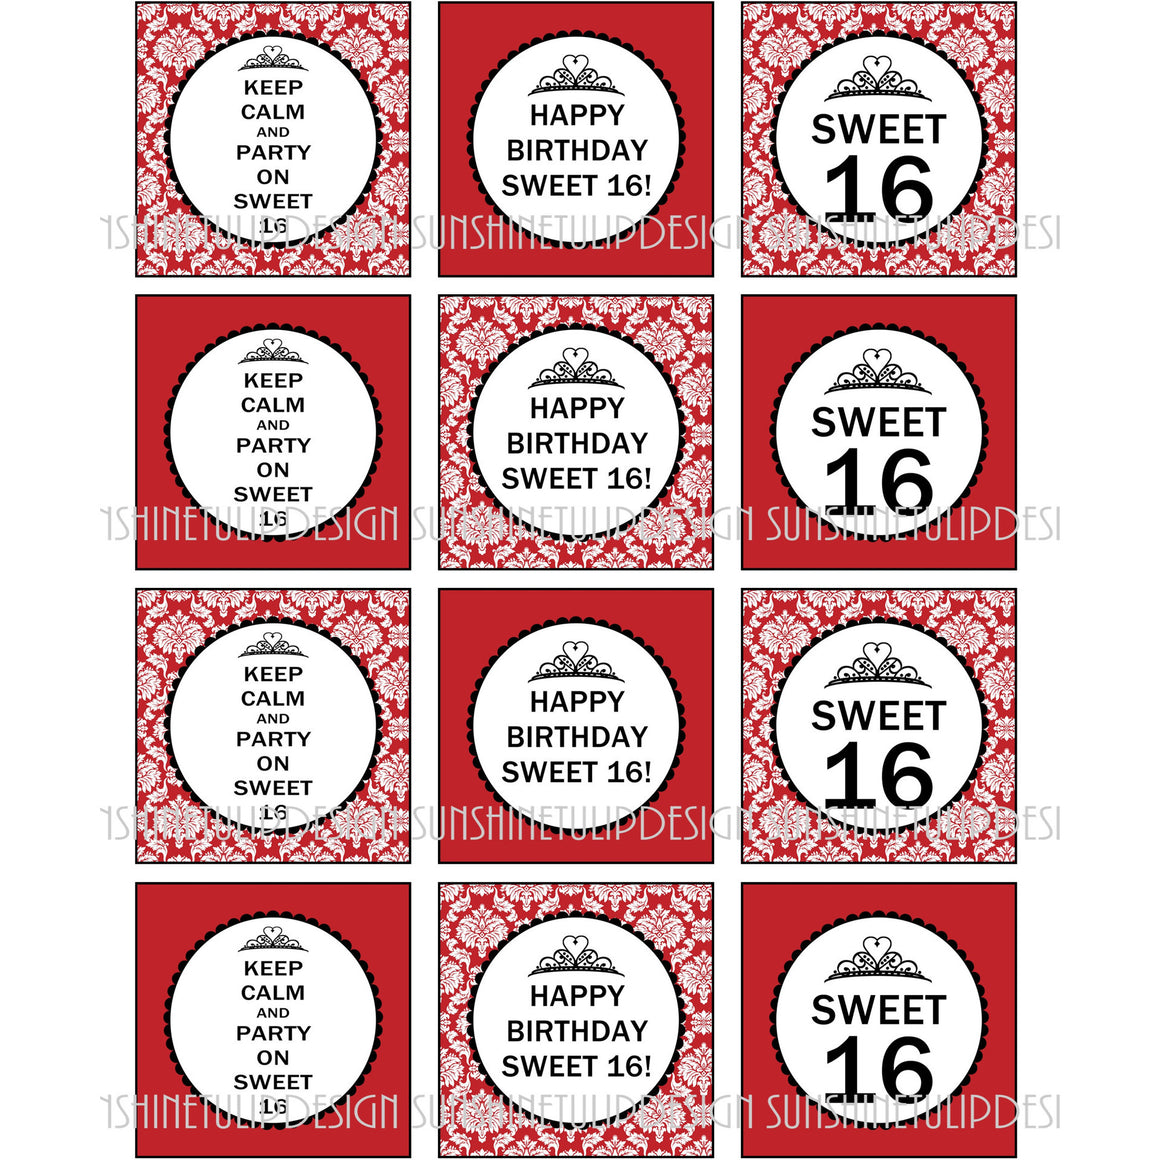 Printable Sweet 16 Birthday Cupcake Toppers, Sticker Labels & Party Favor Tags by SUSHINETULIPDESIGN - Sunshinetulipdesign